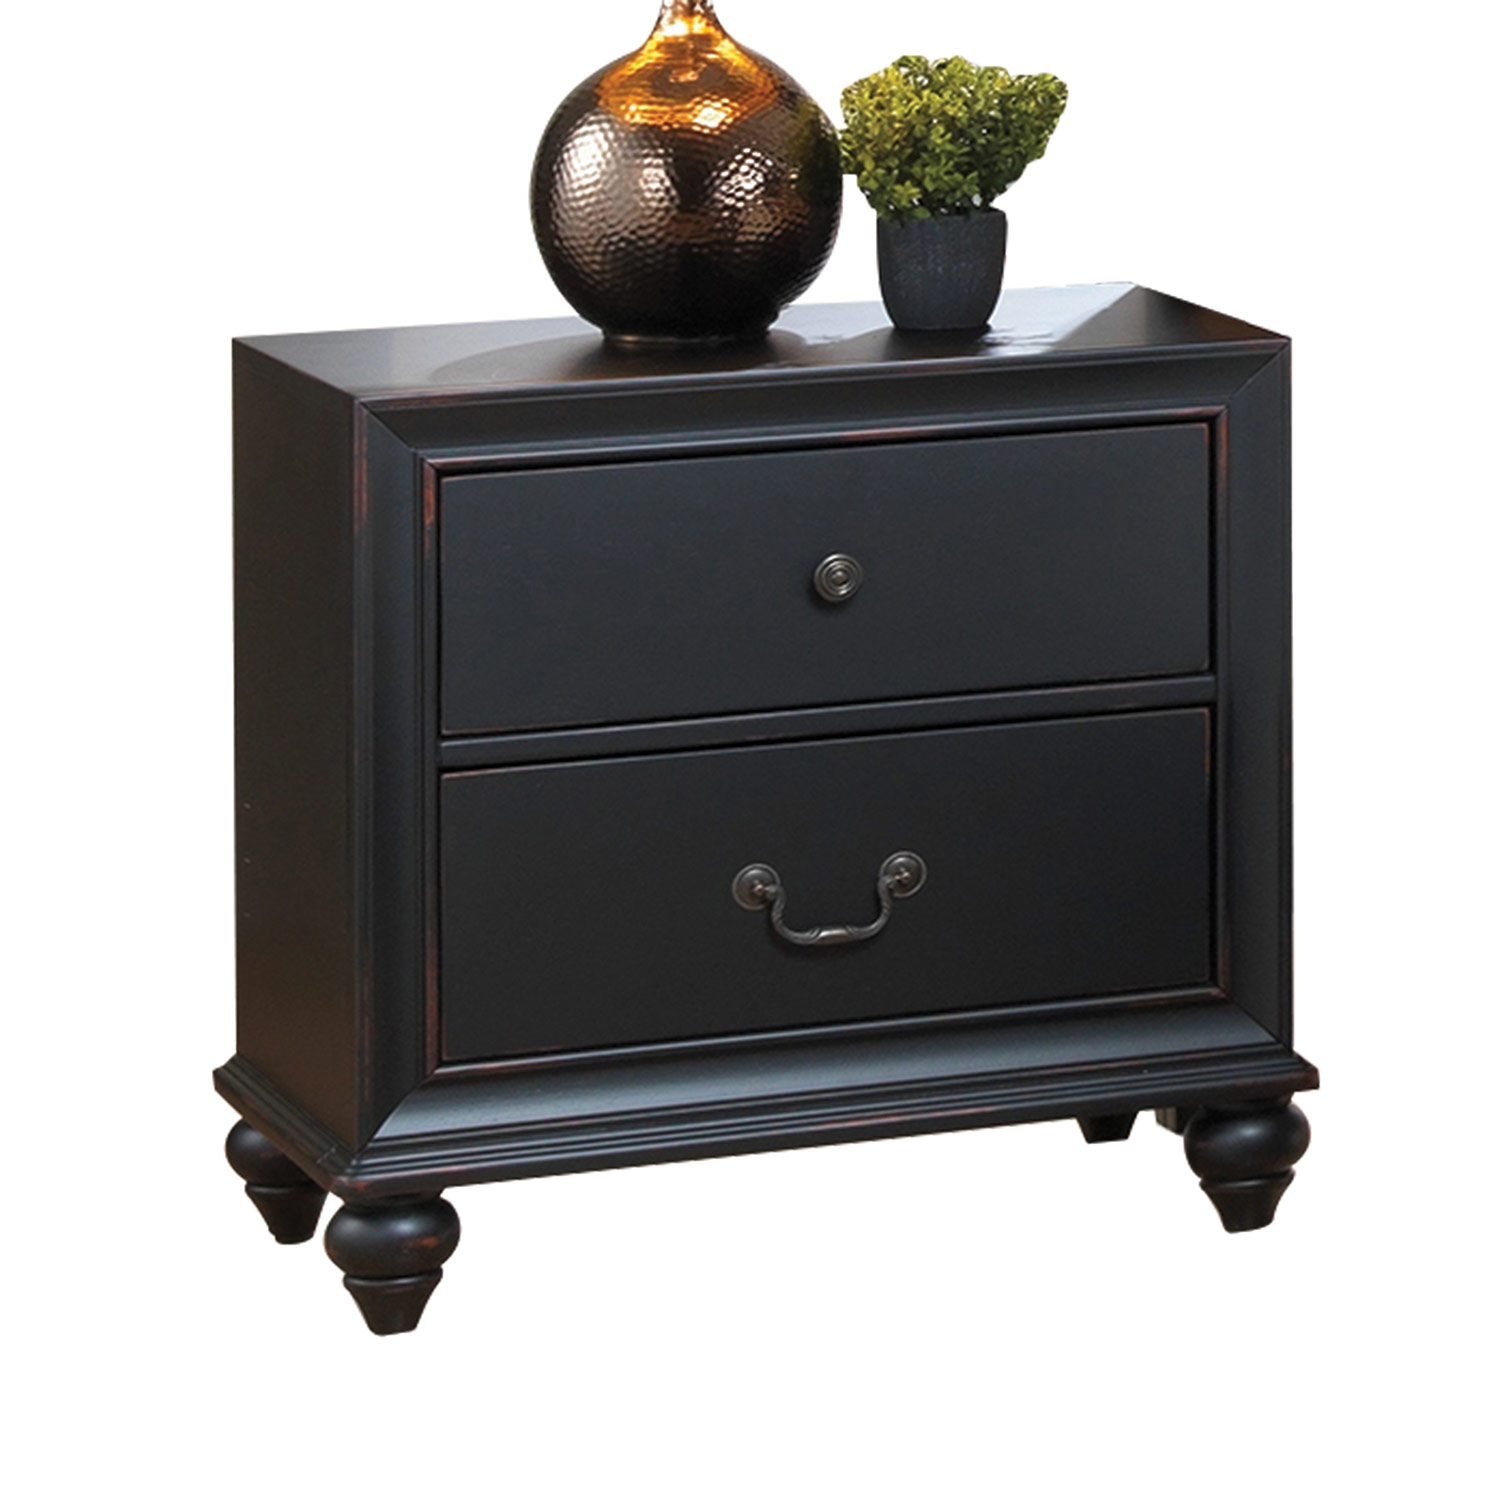 Acme Edwige Nightstand - Black